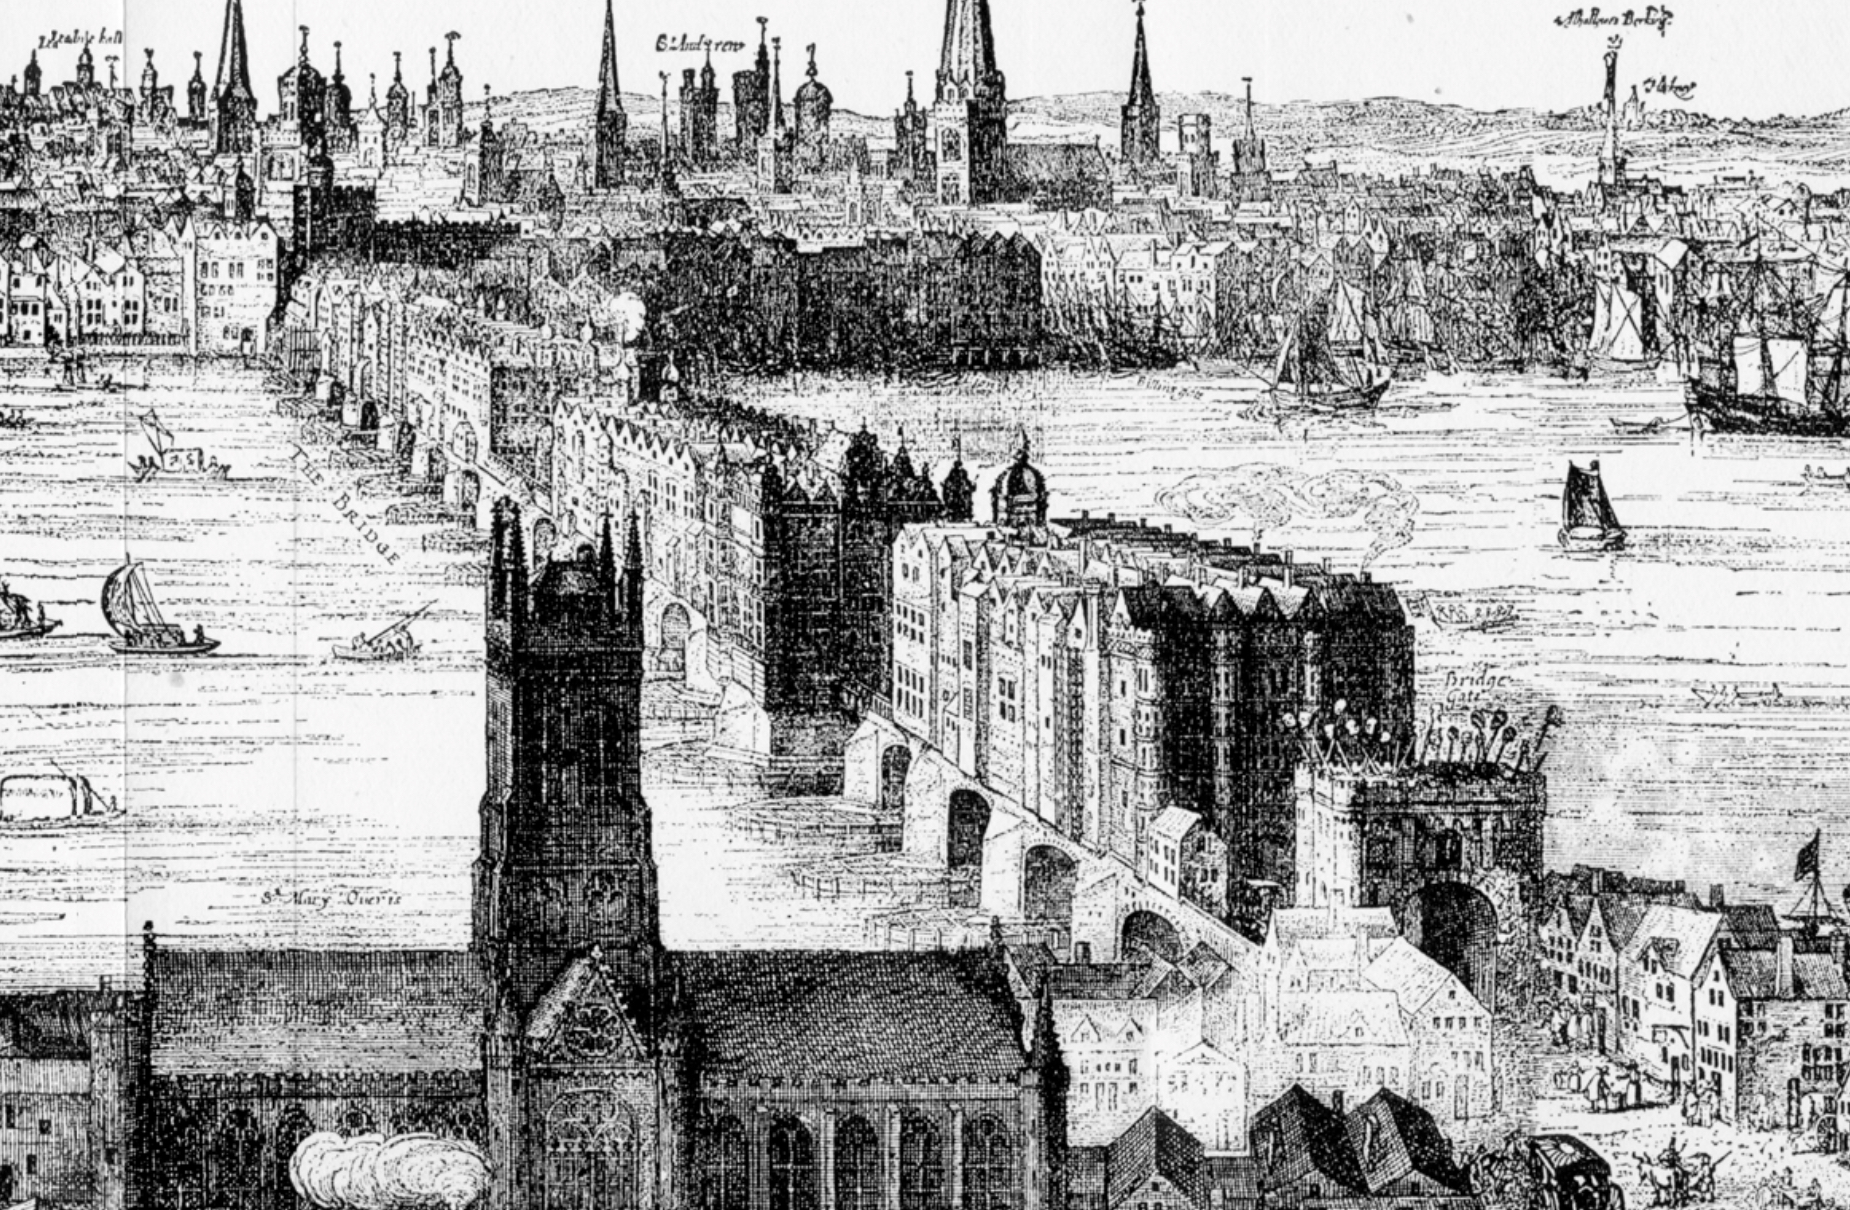 London Bridge 1616 : Claes Van Visscher